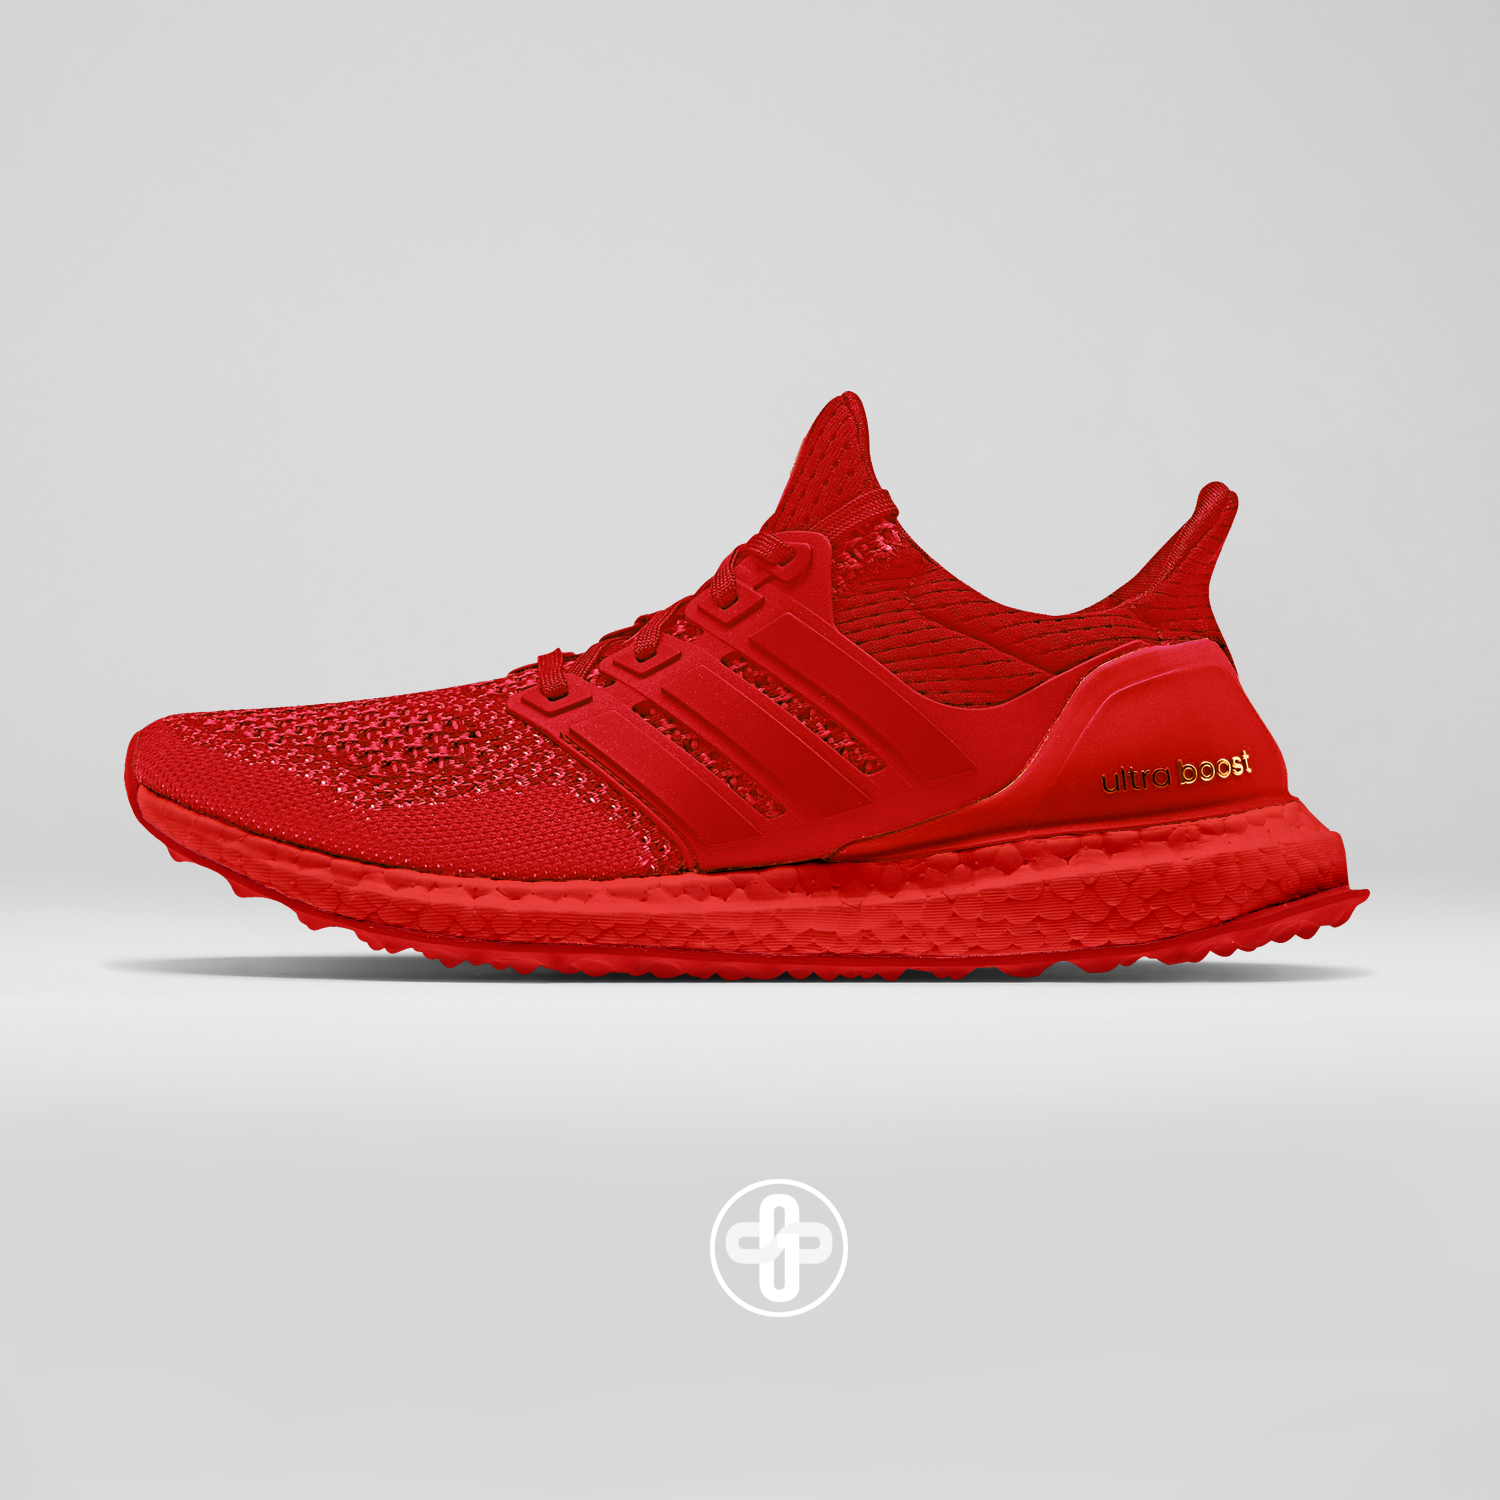 half off db2f1 b0976 Adidas Ultra Boost Red October